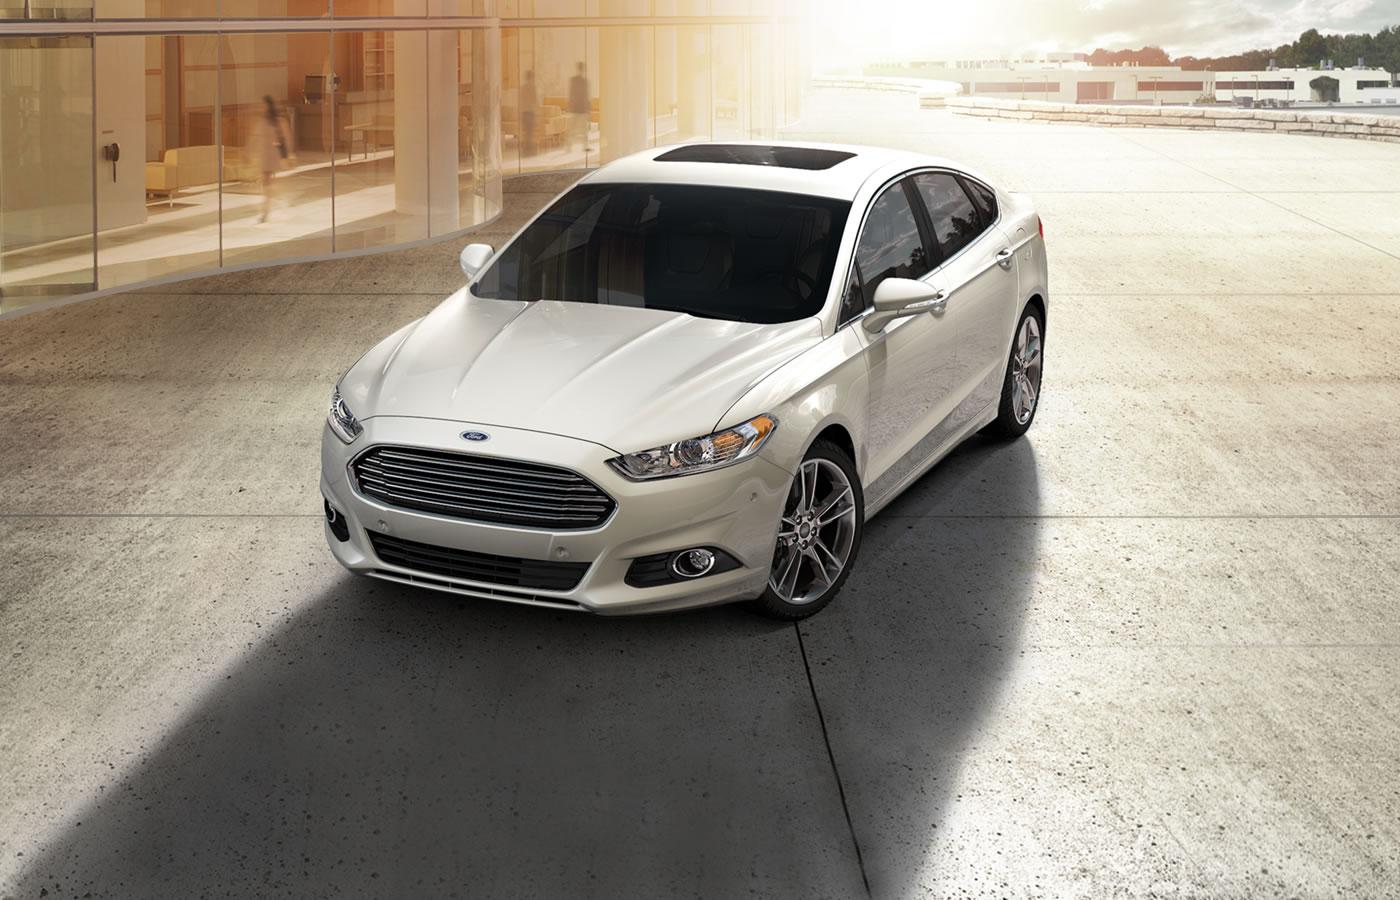 Lease a ford fusion for 153 month 0 down 132